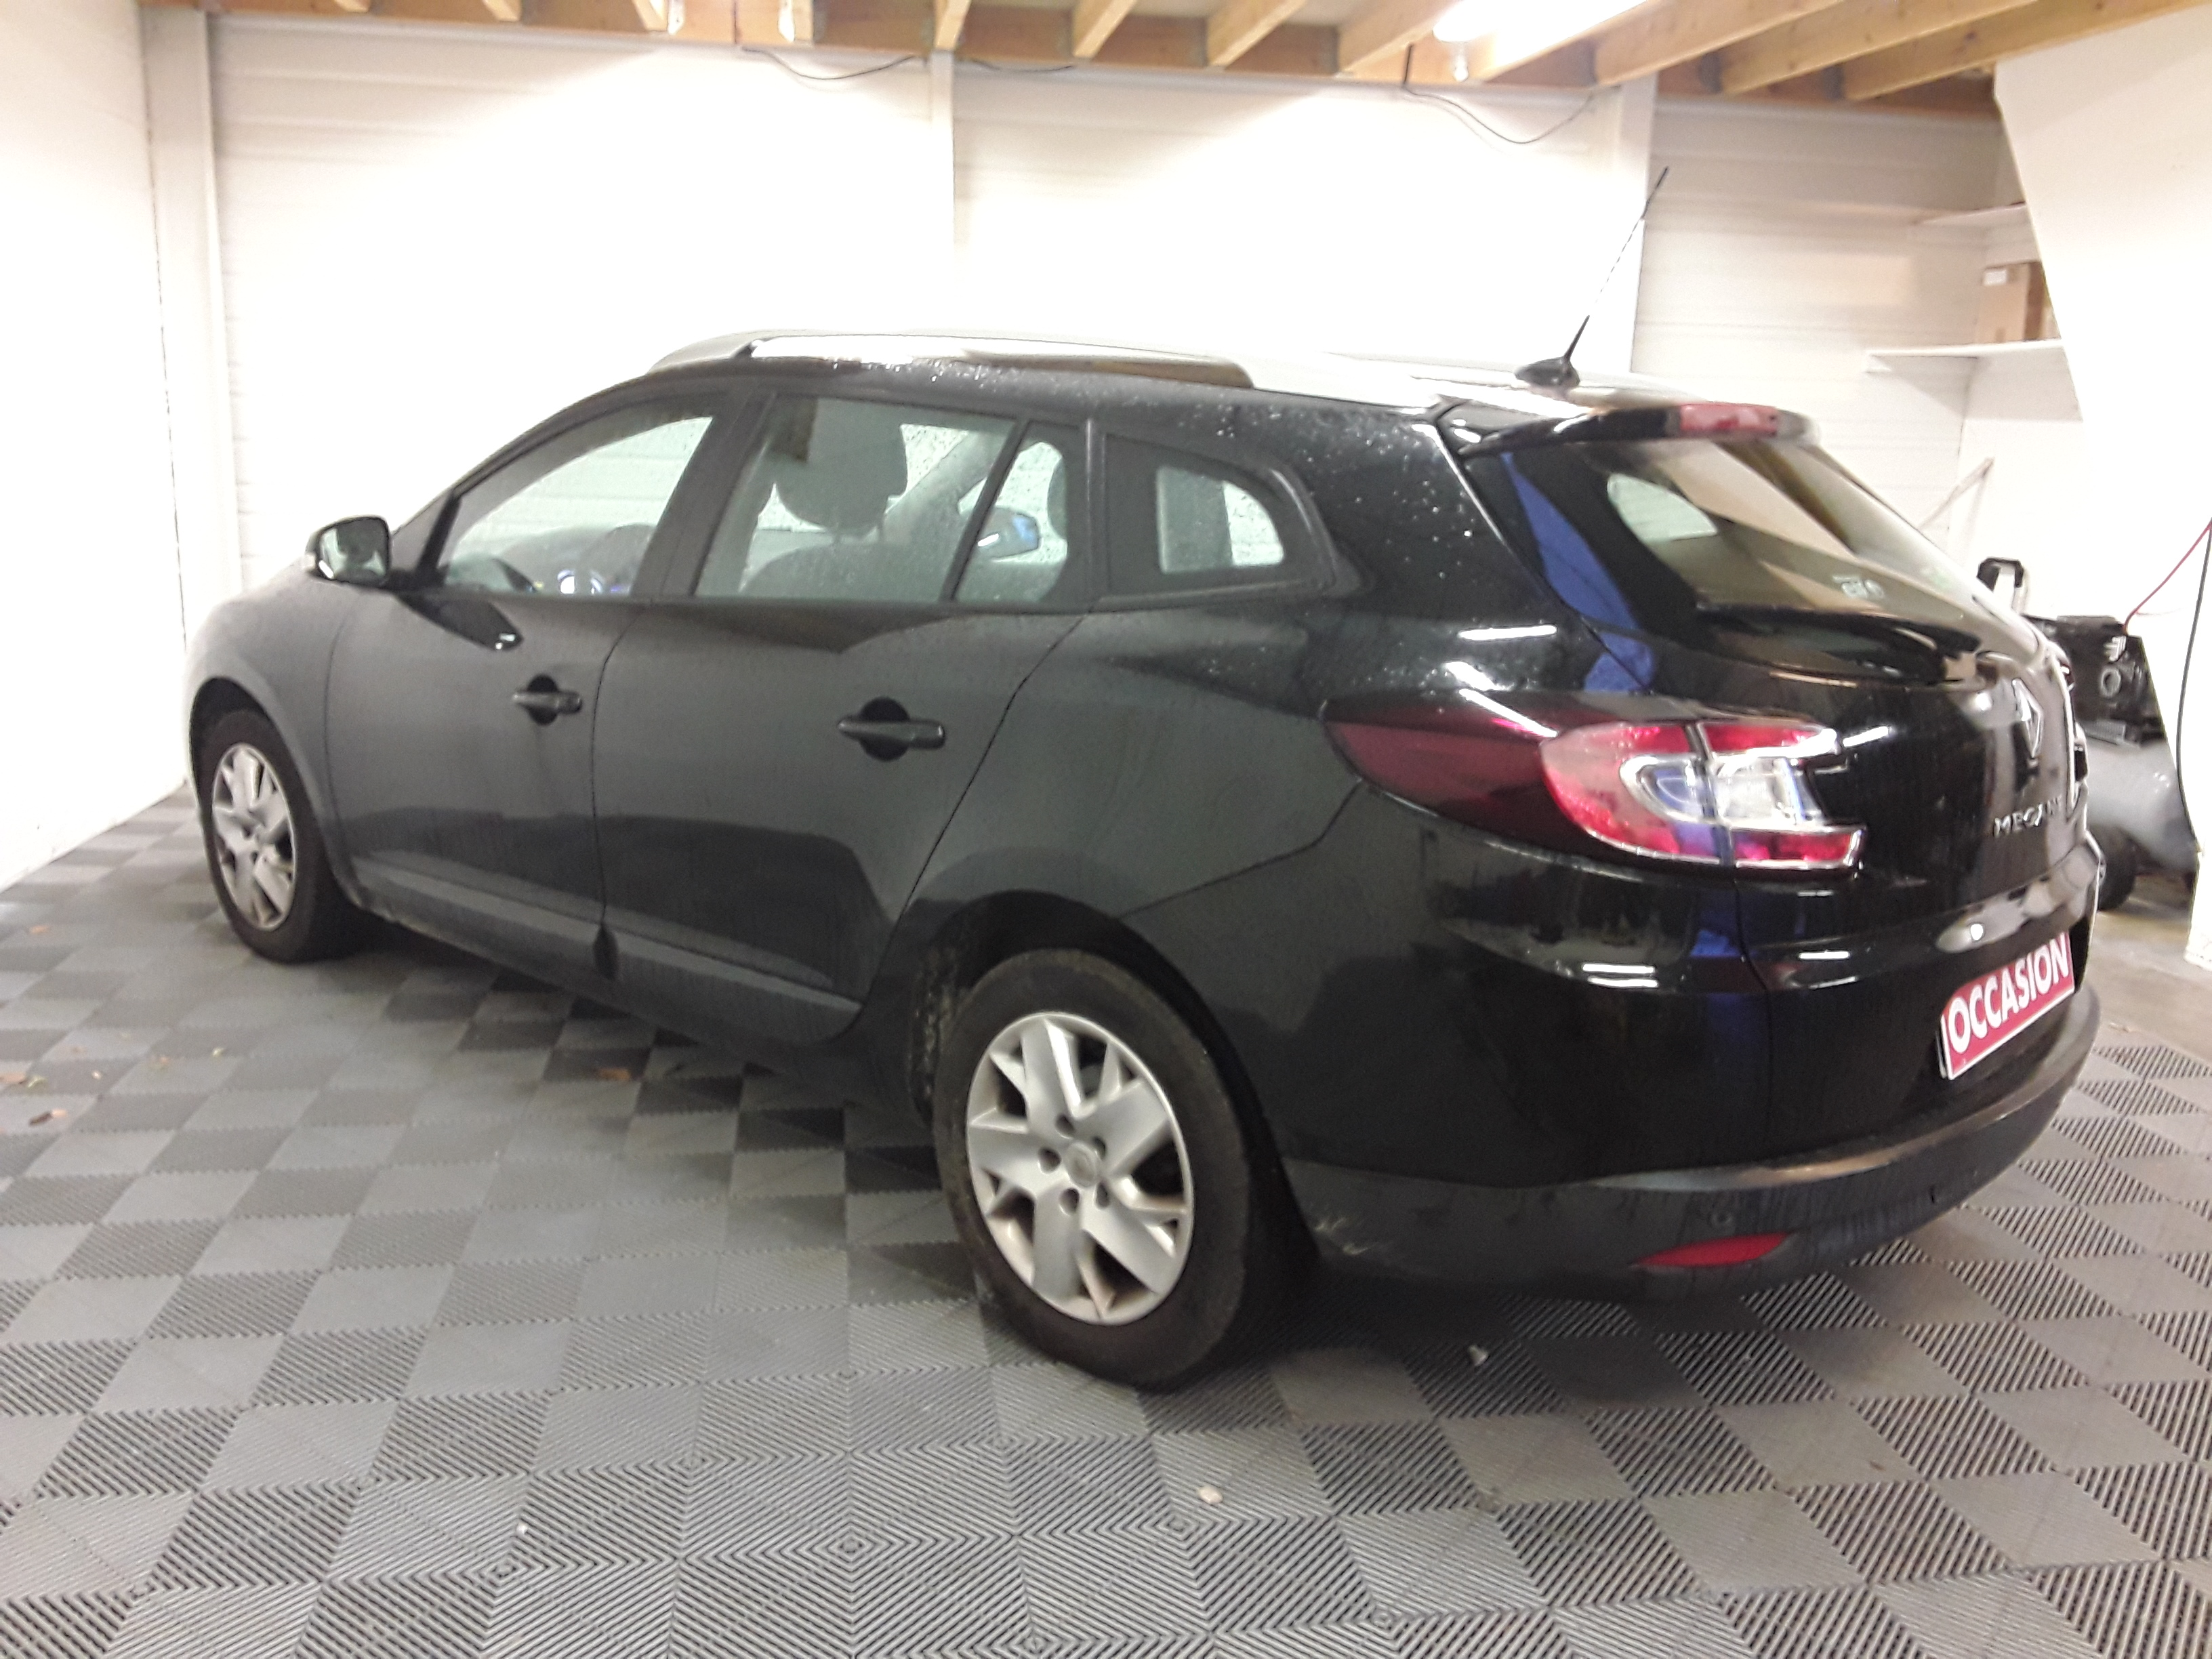 RENAULT MEGANE III ESTATE 2012 à 5900 € - Photo n°6